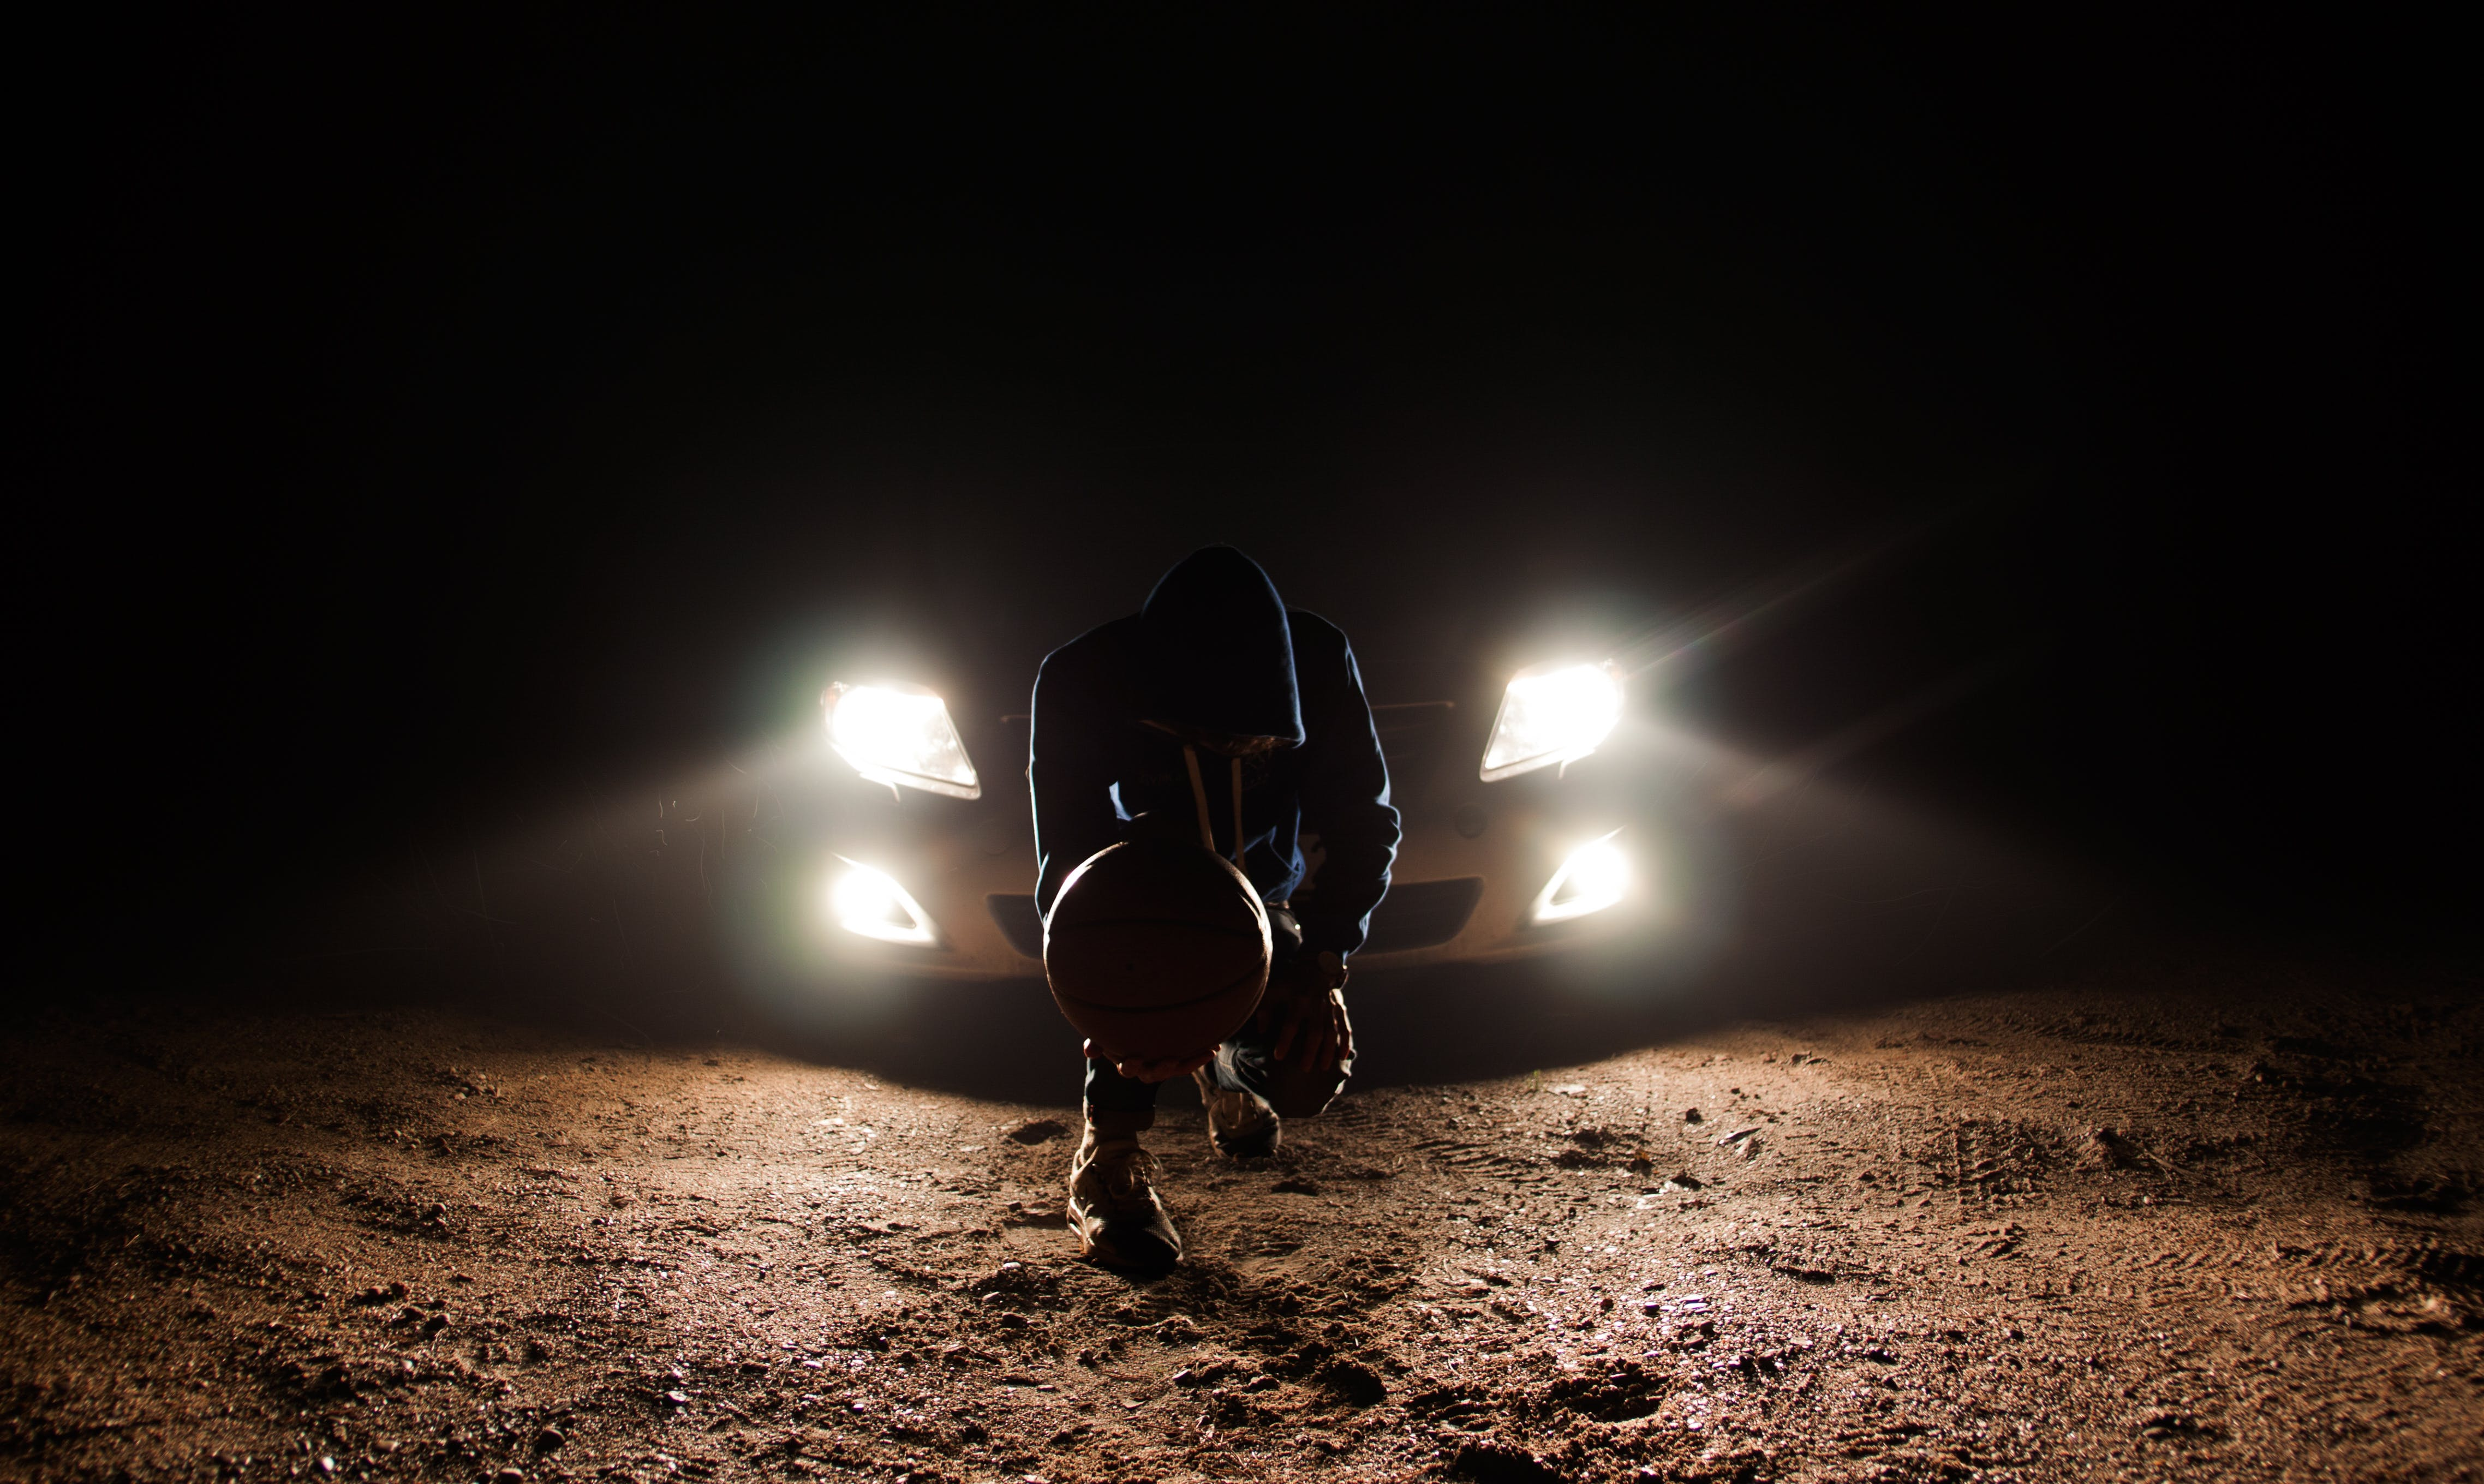 Man Against the Vehicle Headlight Squatting Holding Ball